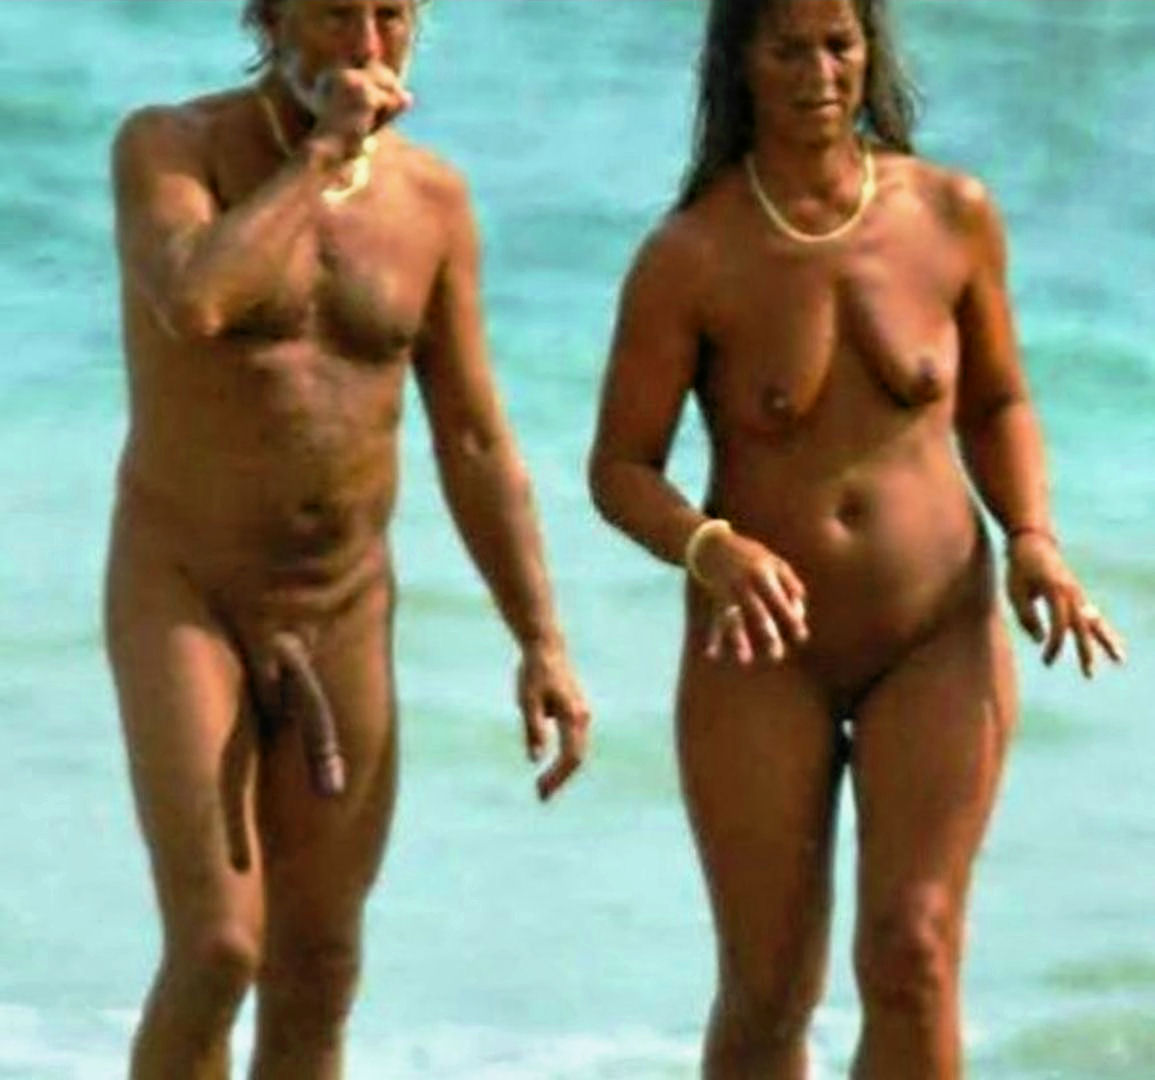 Old nudists necessary words